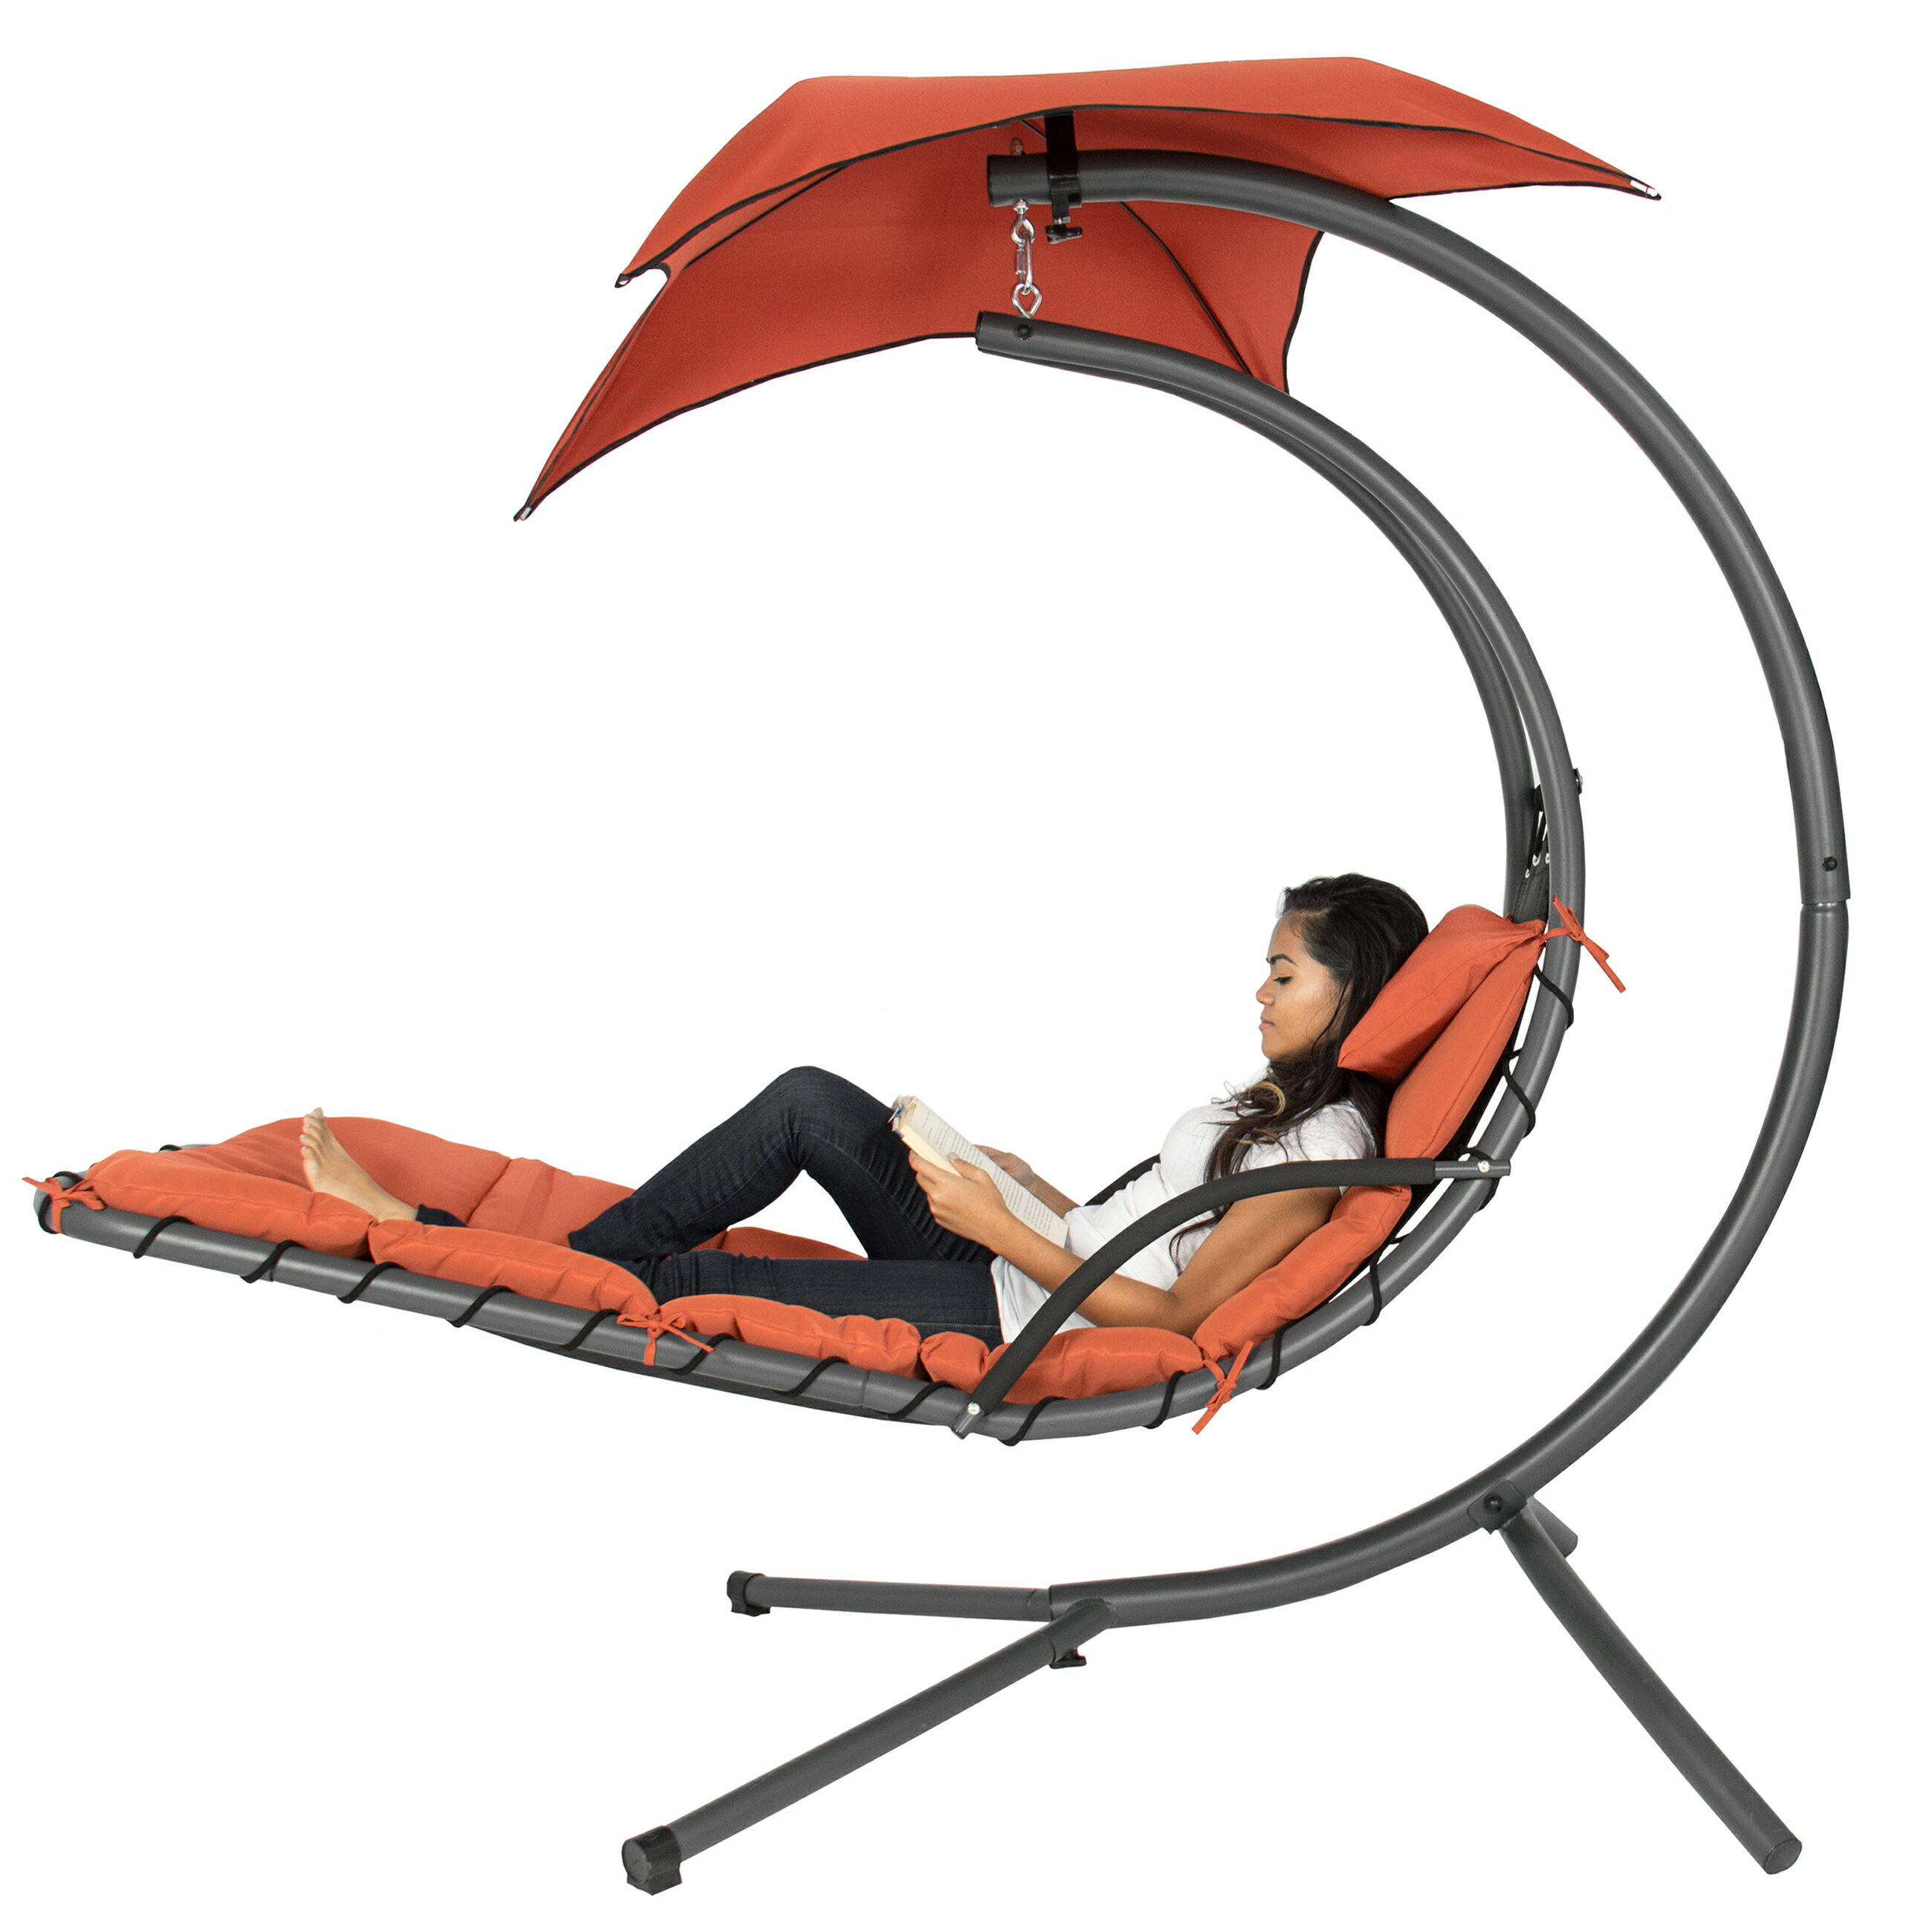 Pleasant Best Choice Products Hanging Curved Chaise Lounge Chair Swing For Backyard Patio W Pillow Canopy Stand Orange Camellatalisay Diy Chair Ideas Camellatalisaycom